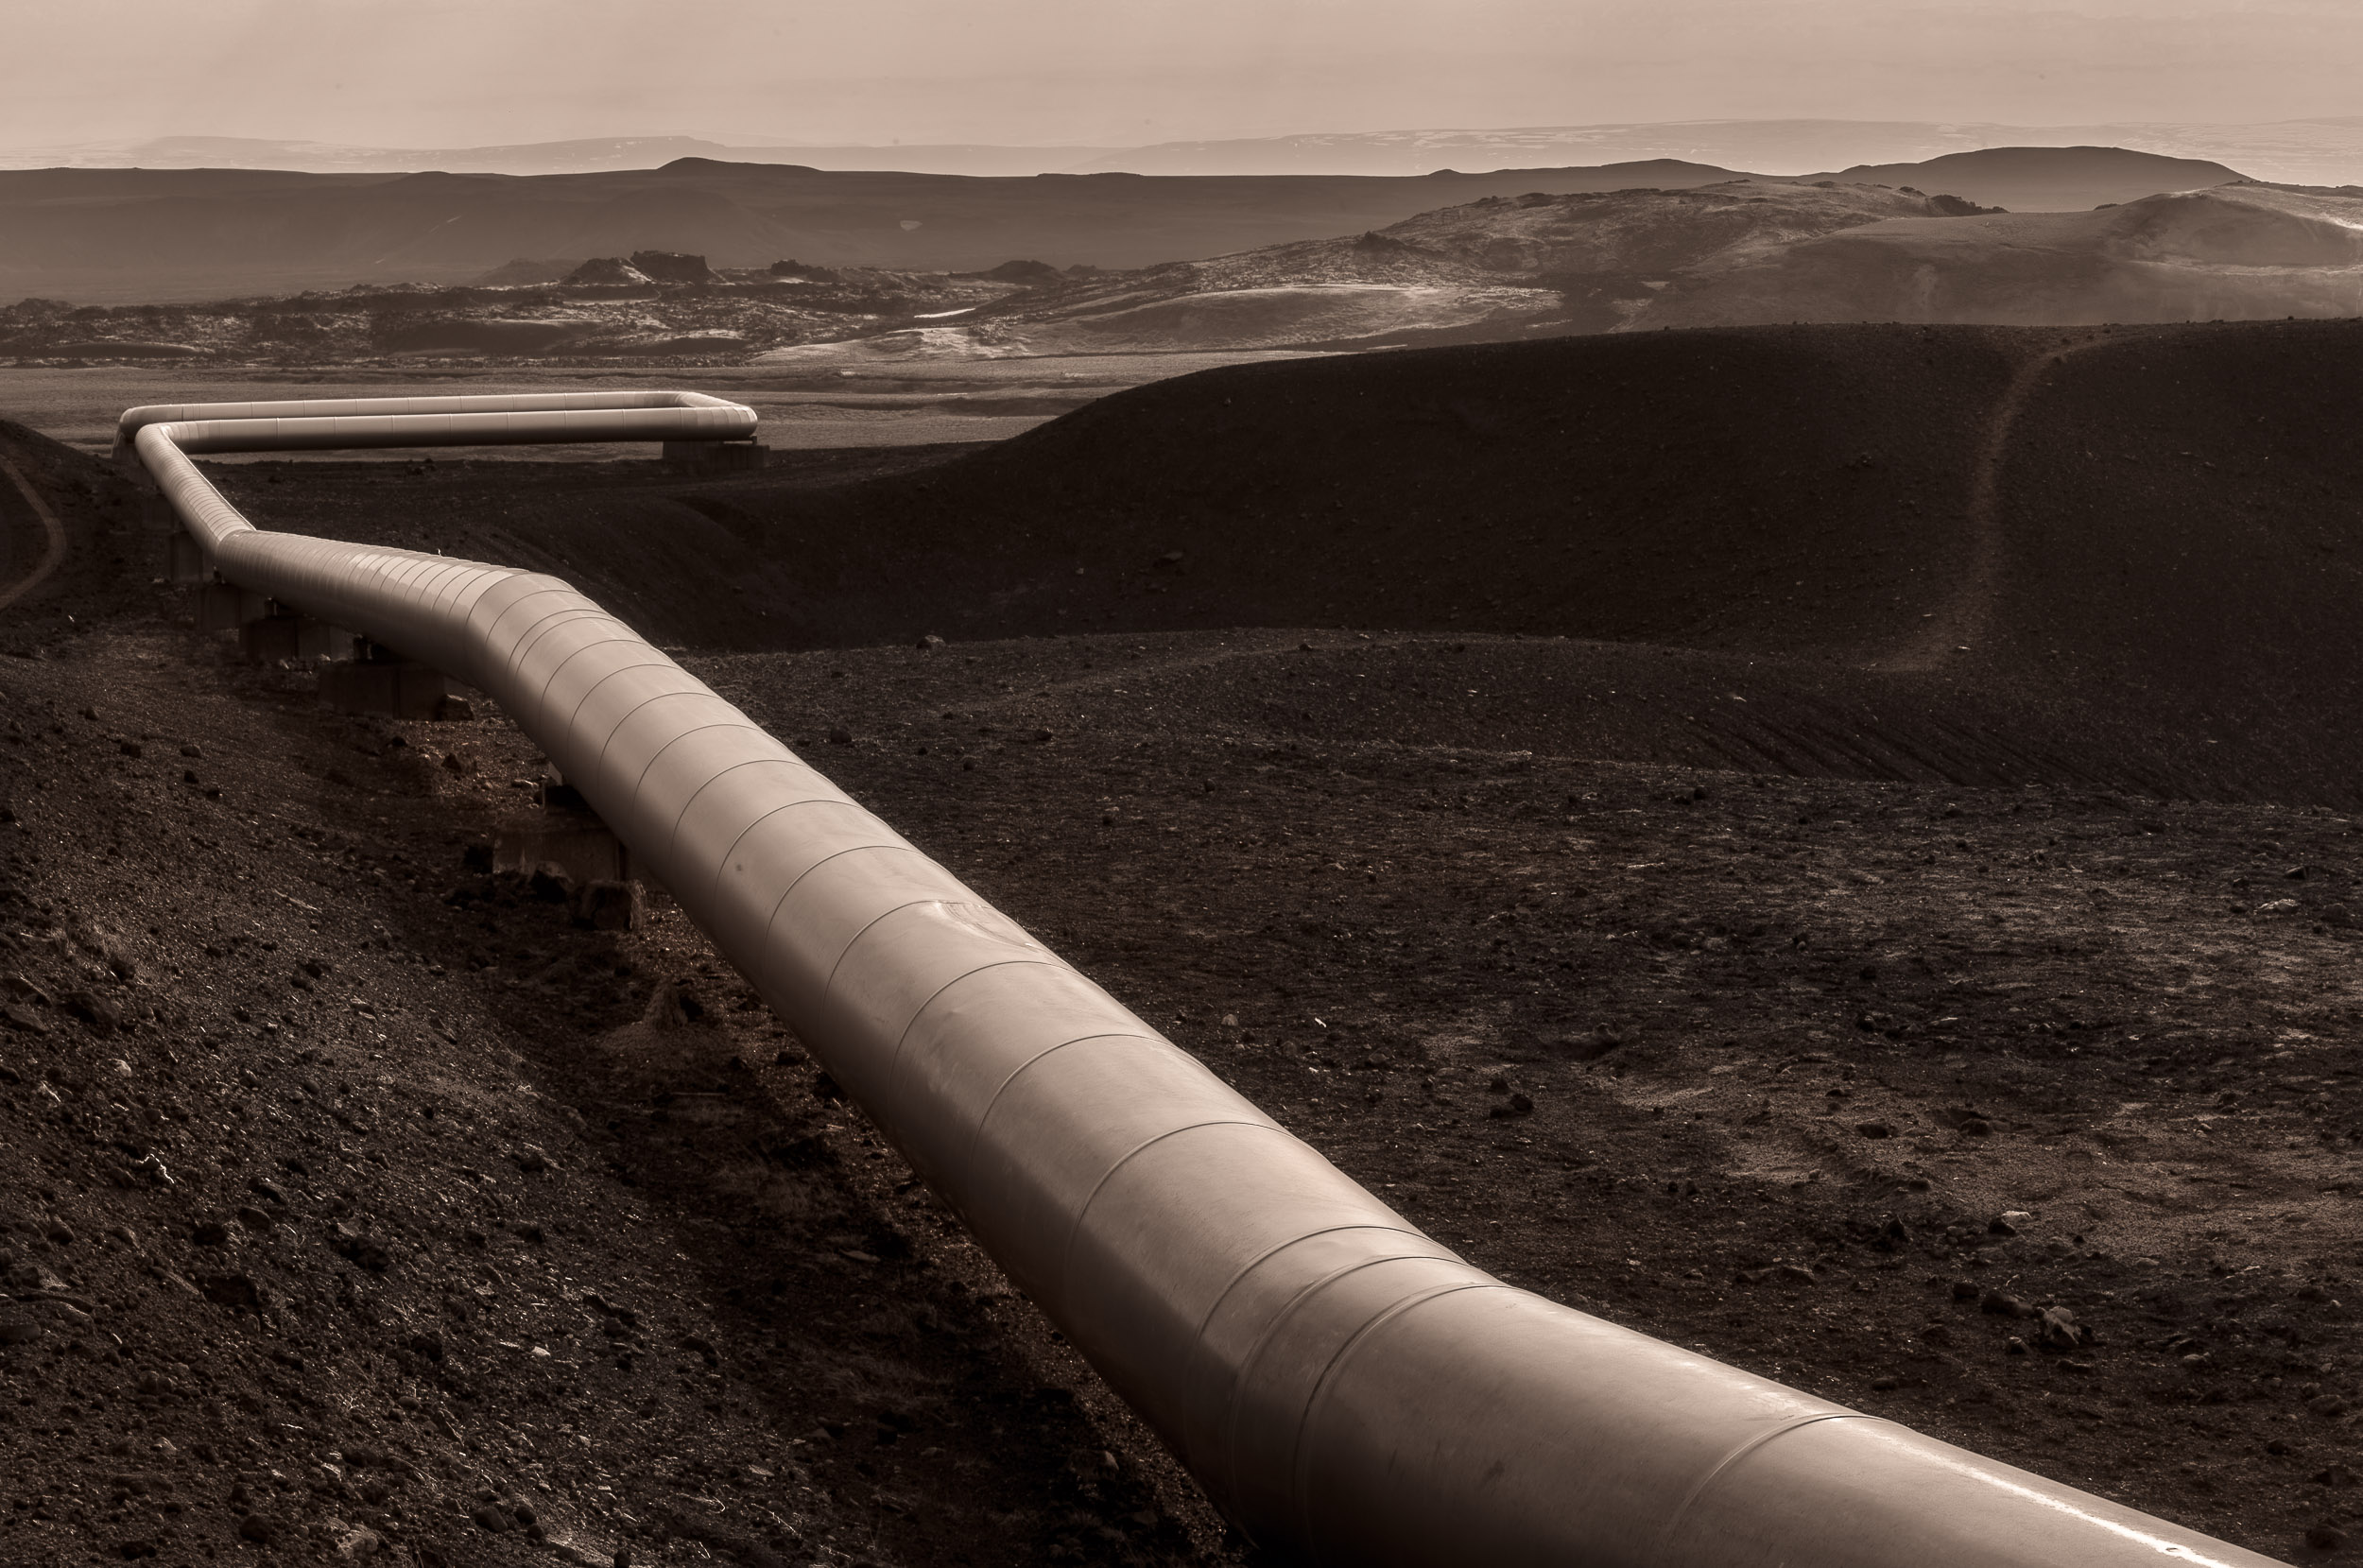 Large pipe transfers steam near the    Viki Crater    near    Myvatn    in    Iceland   .